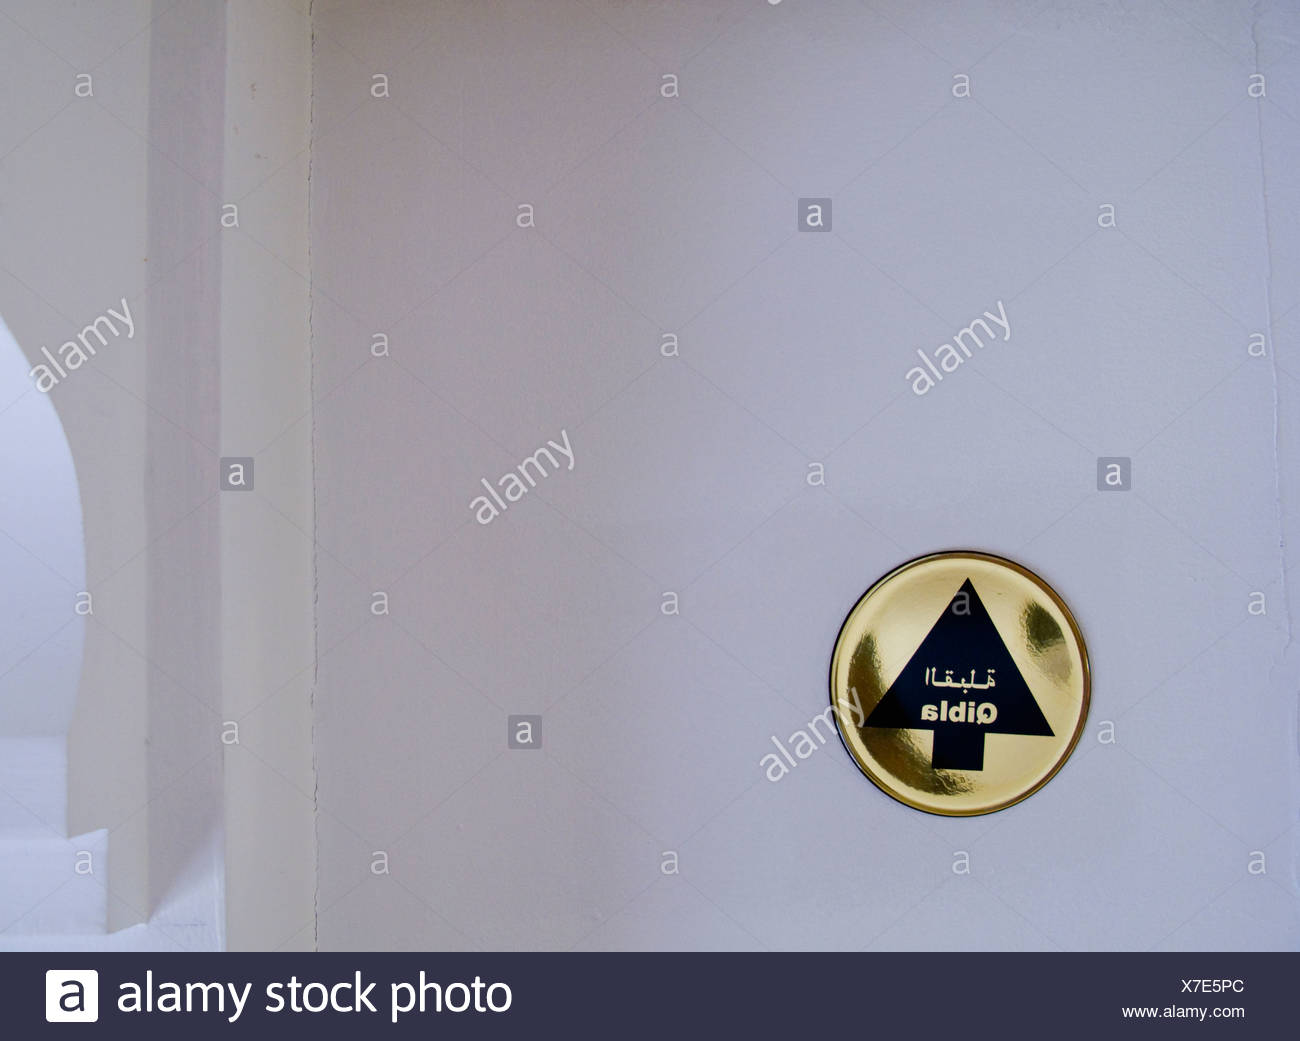 Brass Plaque Stock Photos & Brass Plaque Stock Images - Alamy